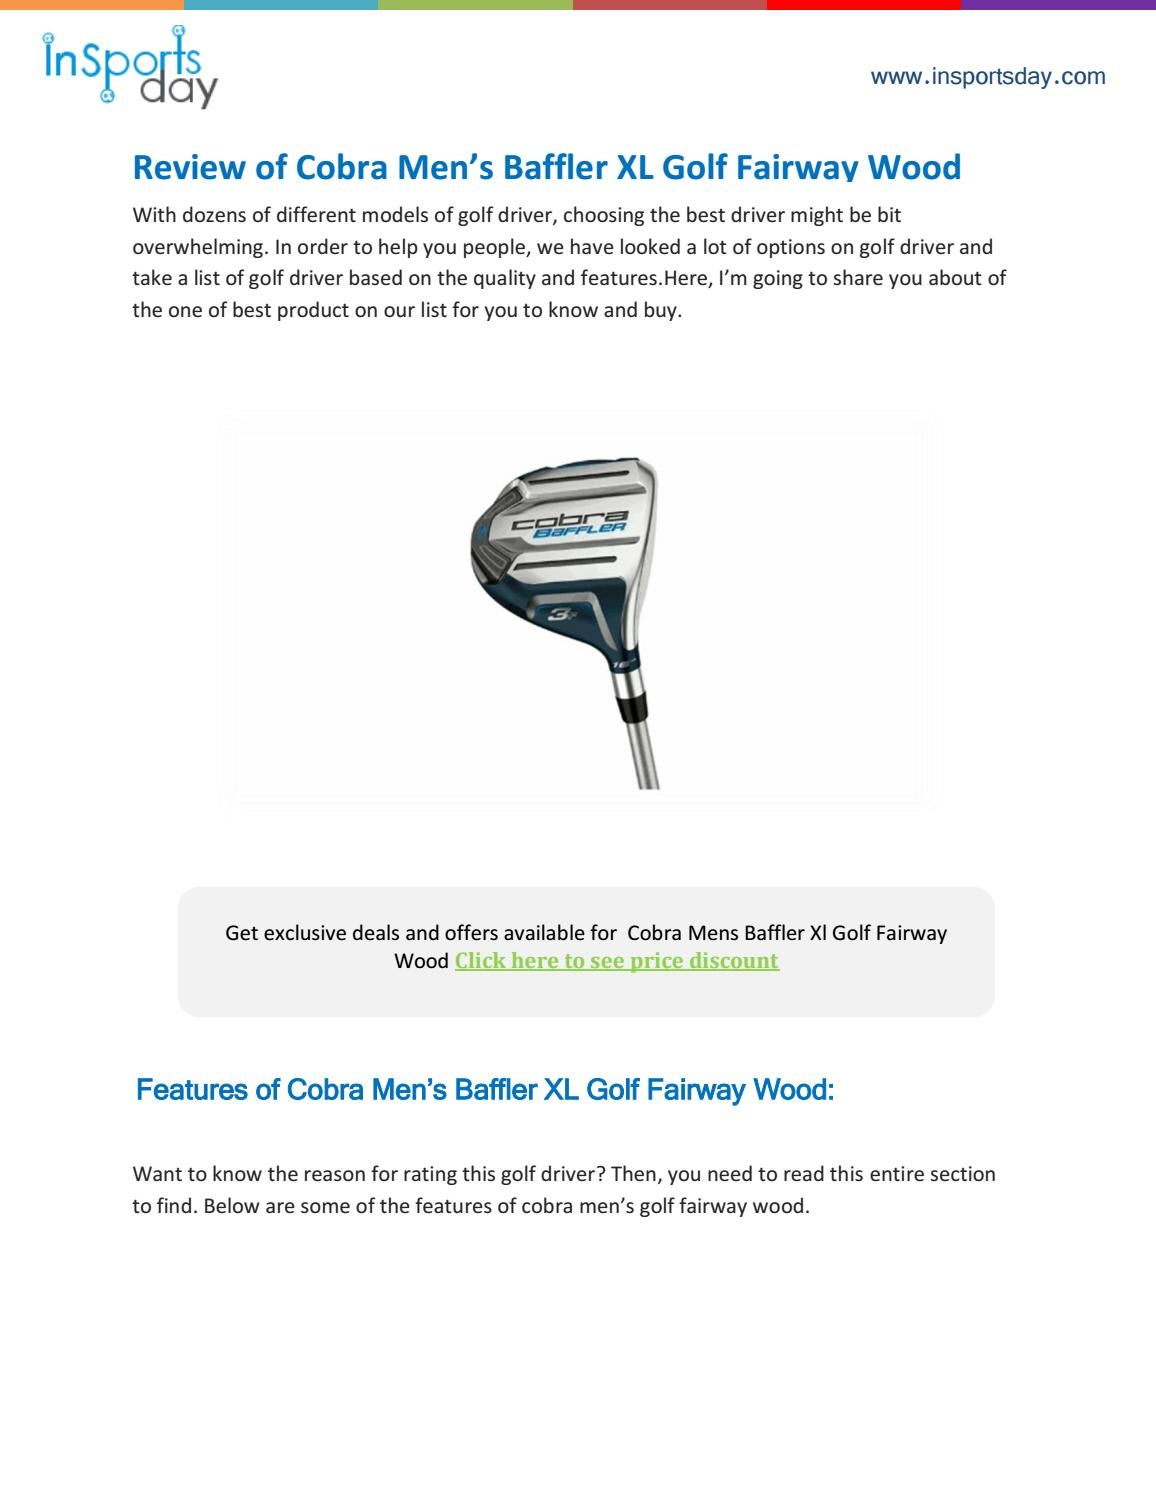 Cobra Baffler Xl Fairway Wood Review By Insportsday Issuu